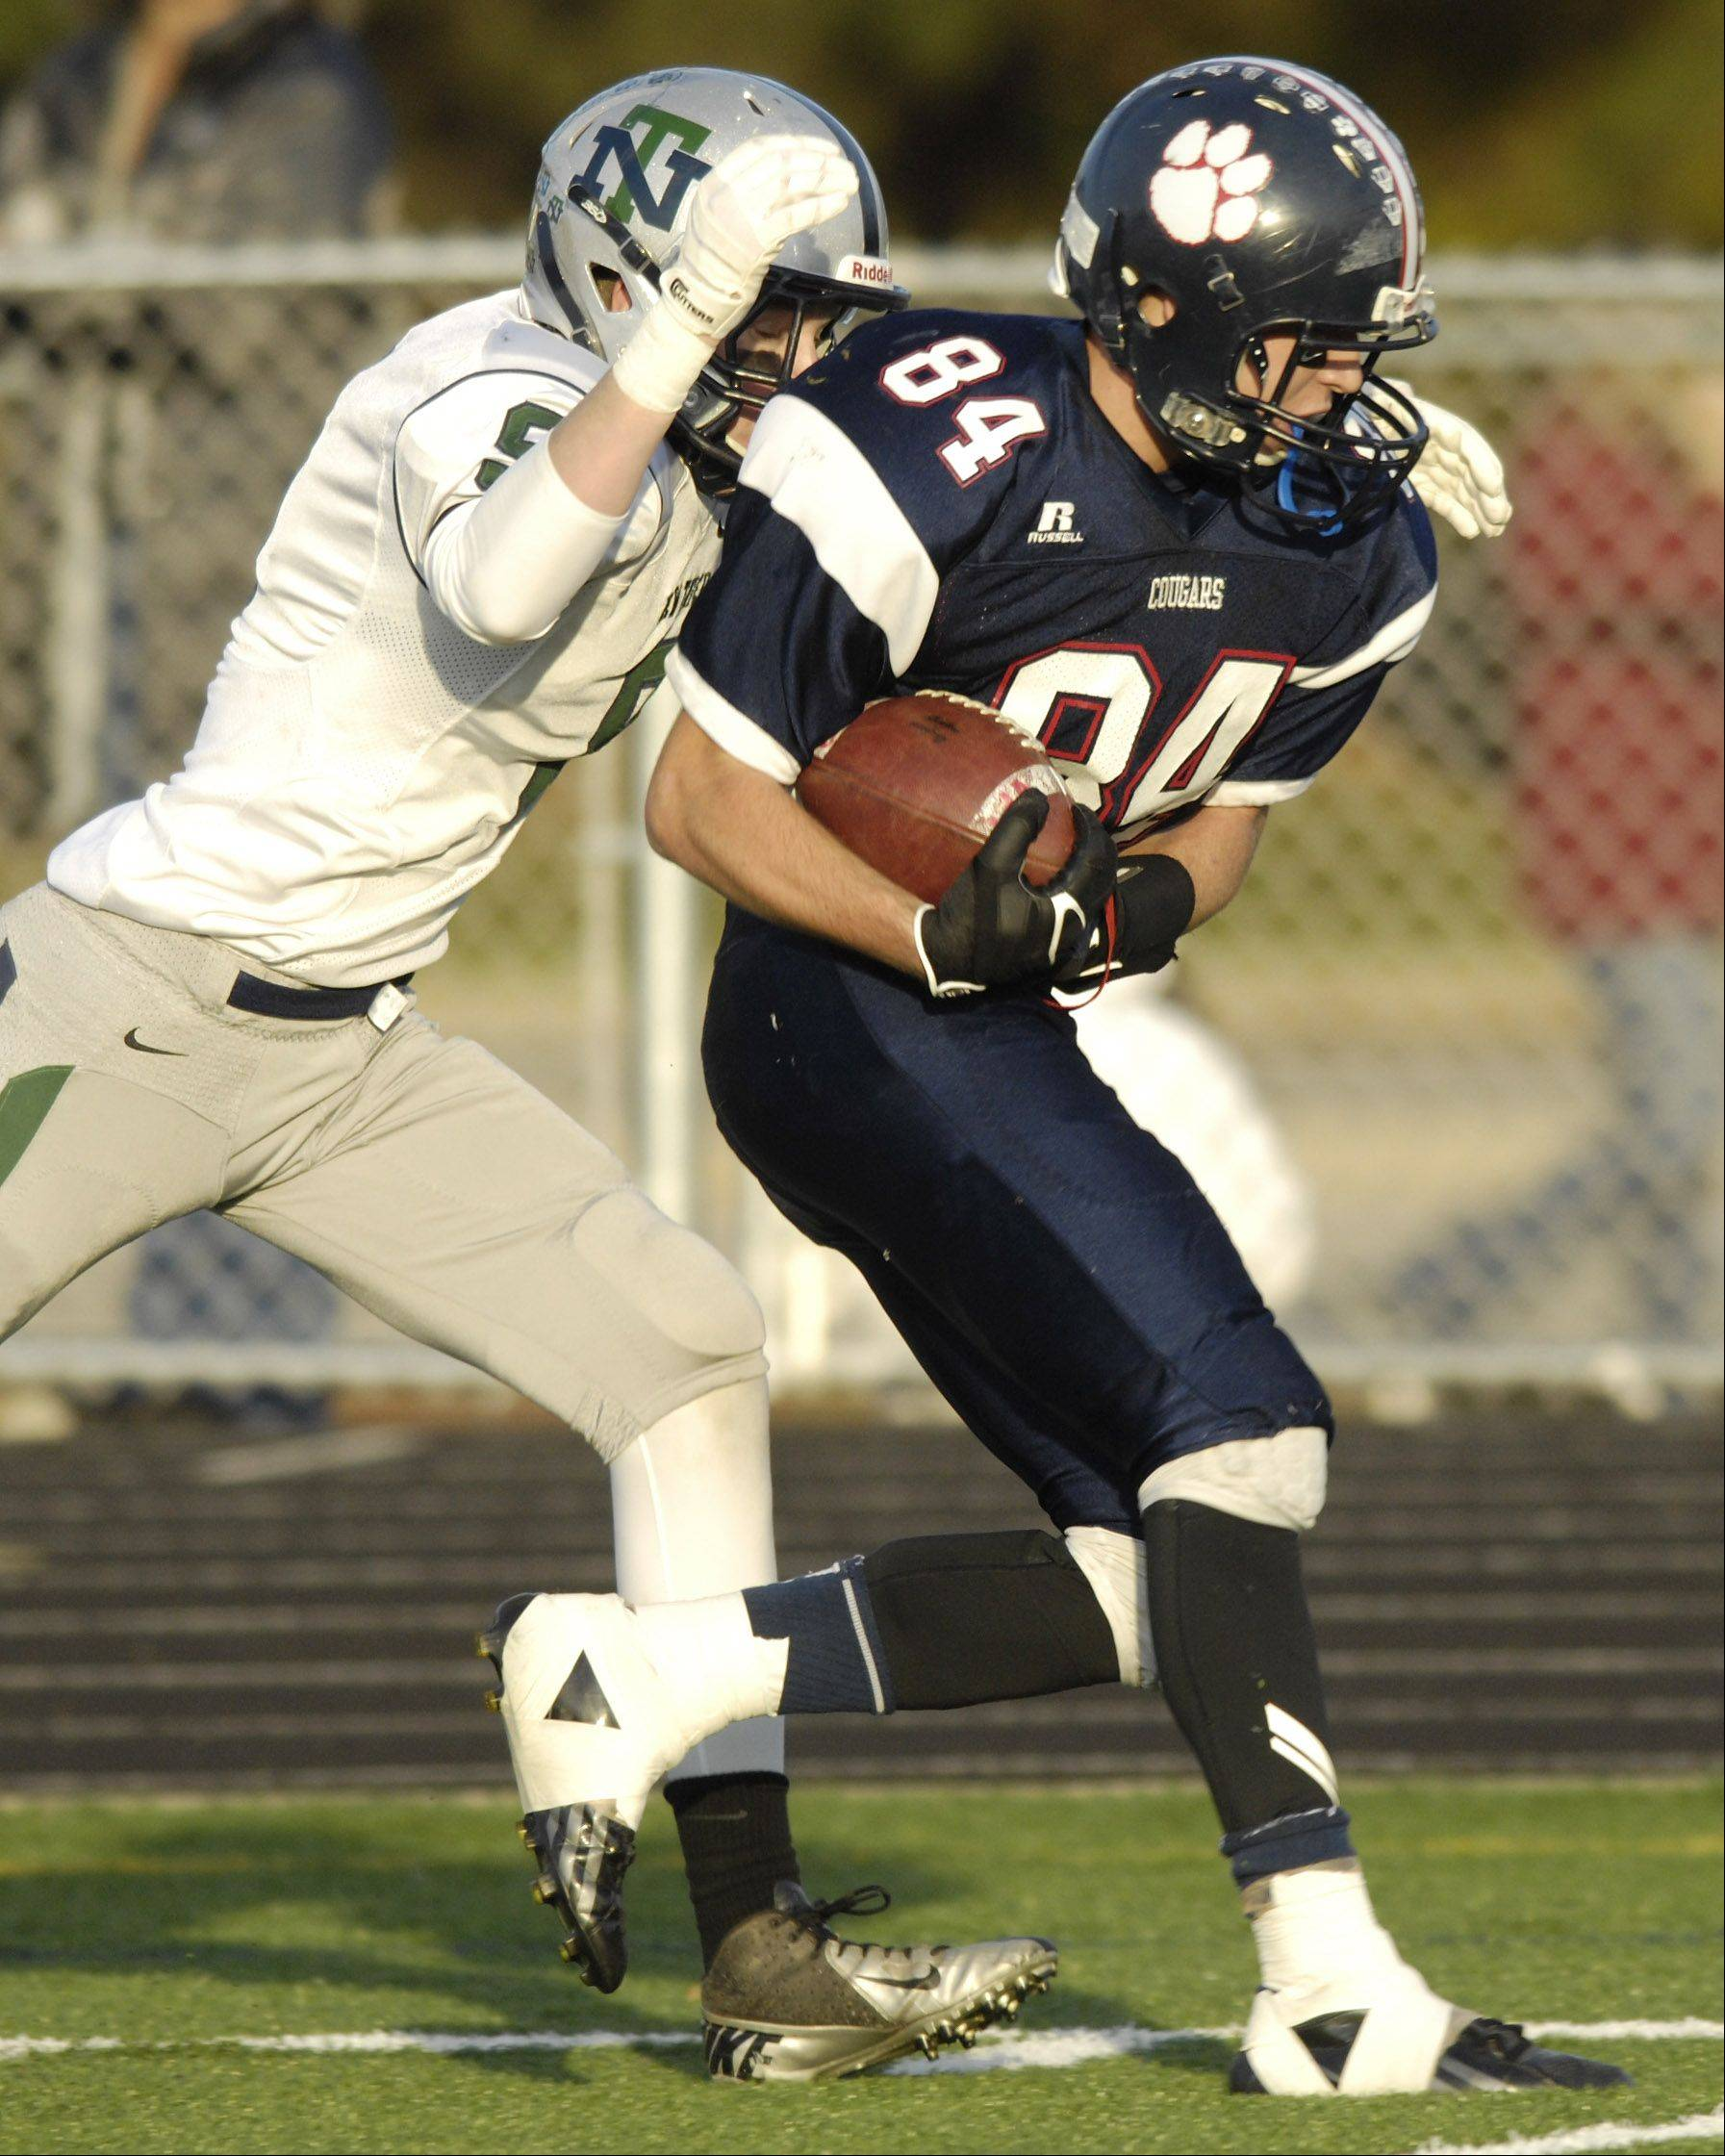 Conant's Tim Manczko, right, makes a catch for a big gain in front of New Trier's Trent Peters during Saturday's game.